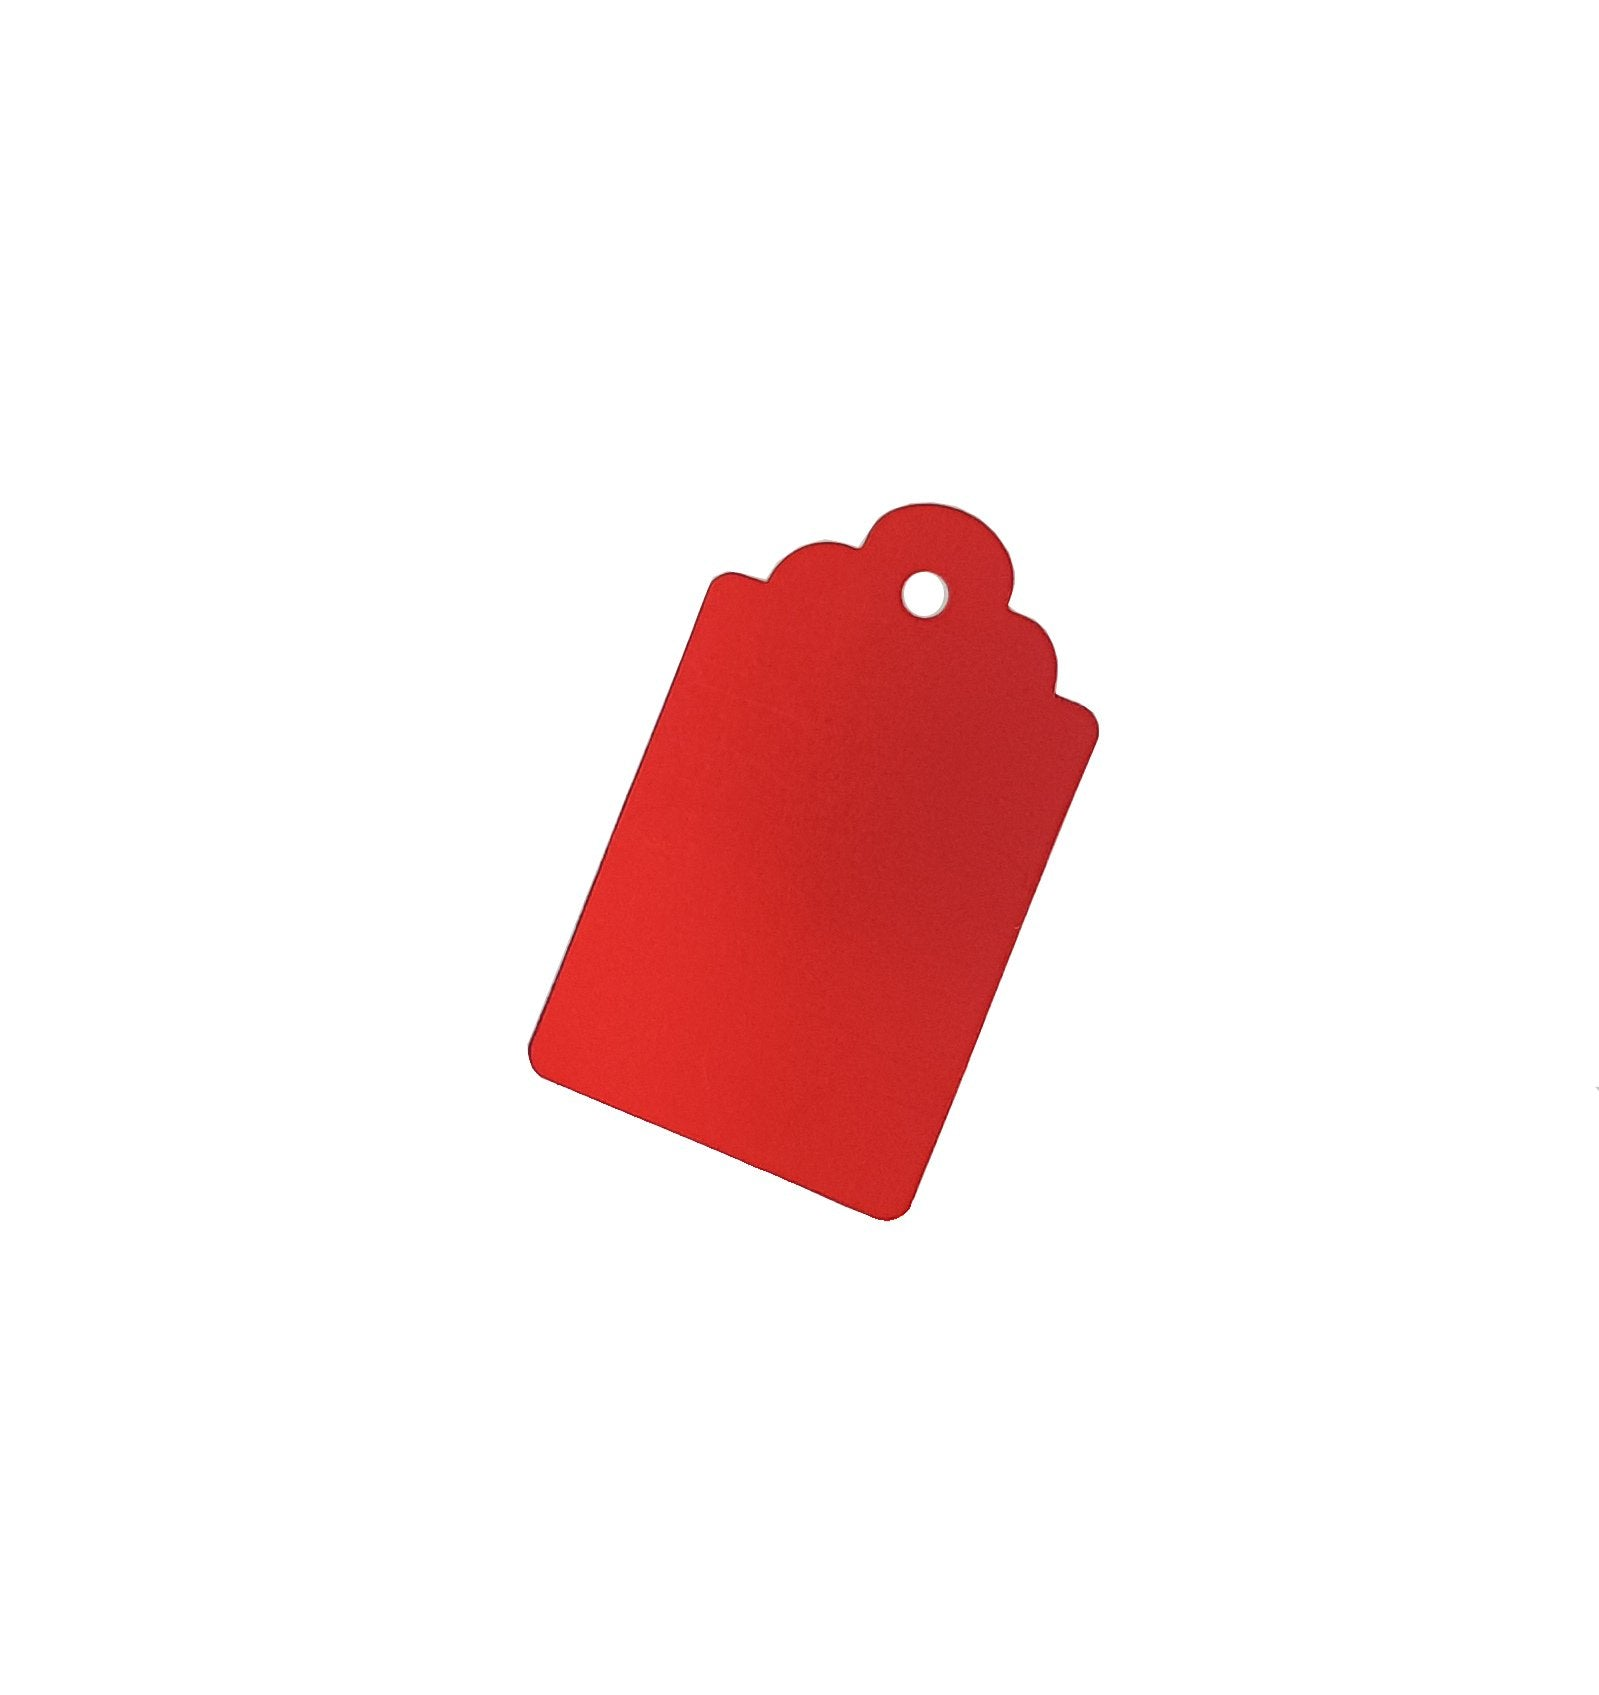 Metallic Red Xmas Gift Tags-Single-sided Red Gift Tags